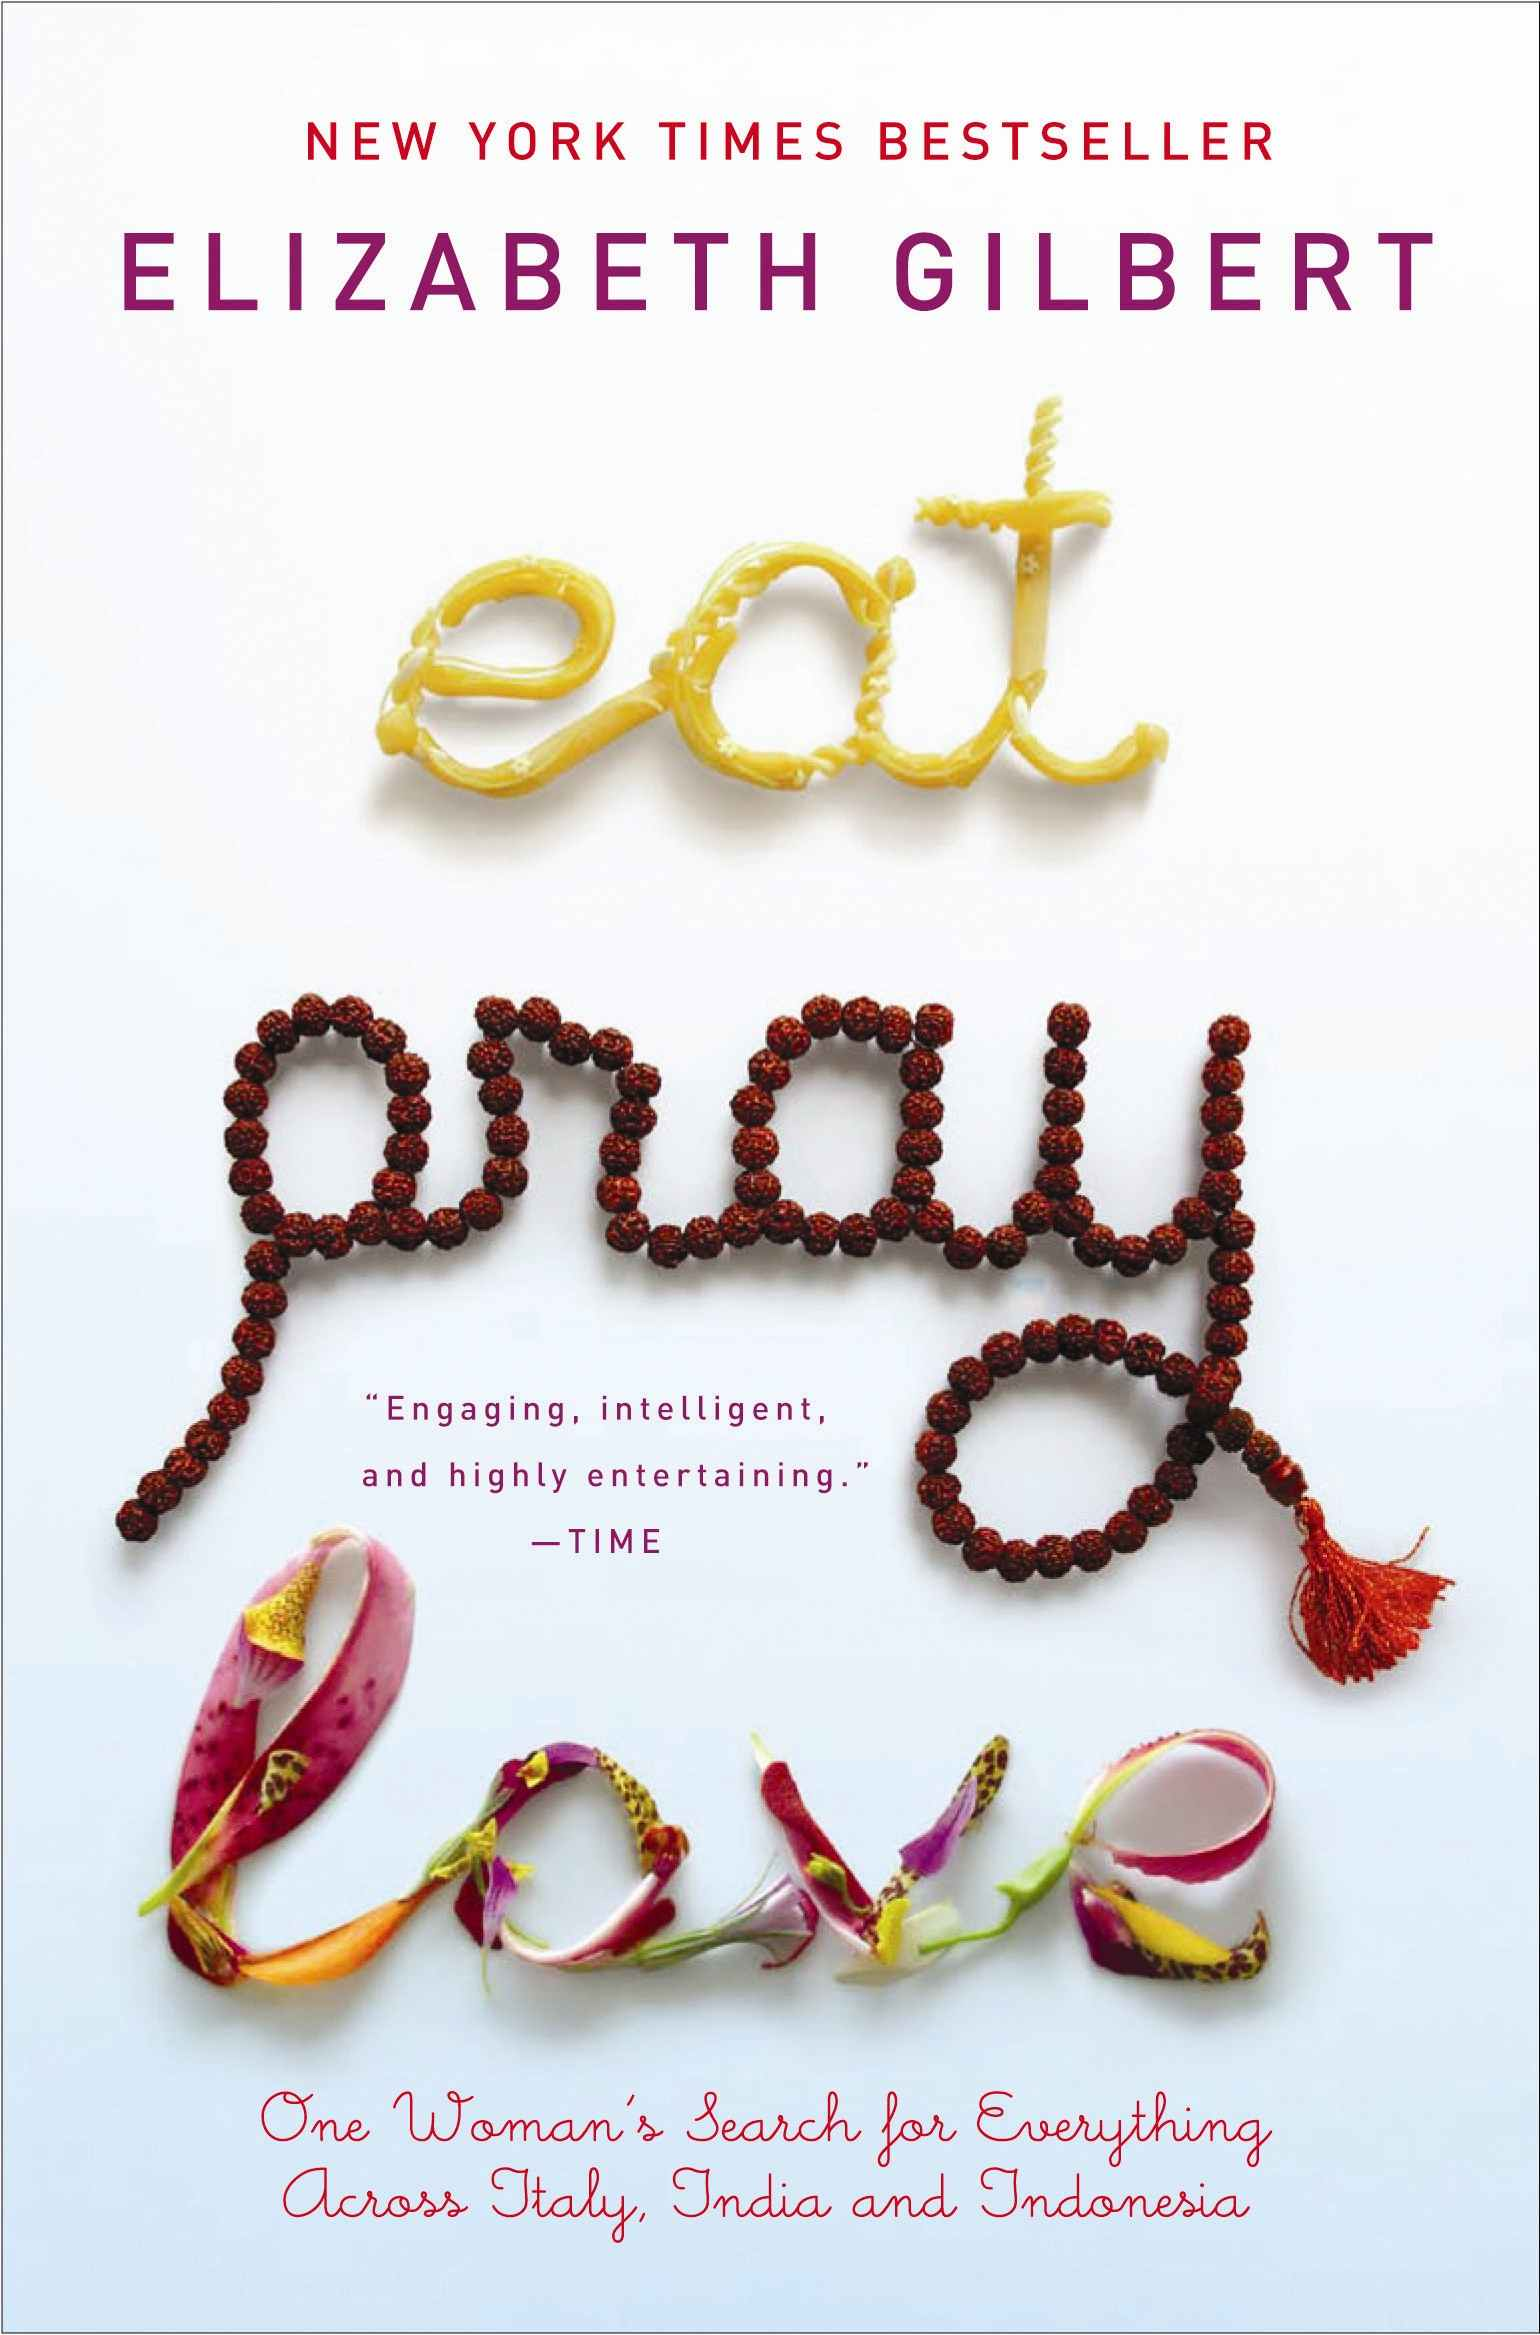 Eat, Pray, Love: One Woman's Search for Everything across Italy, India and Indonesia and